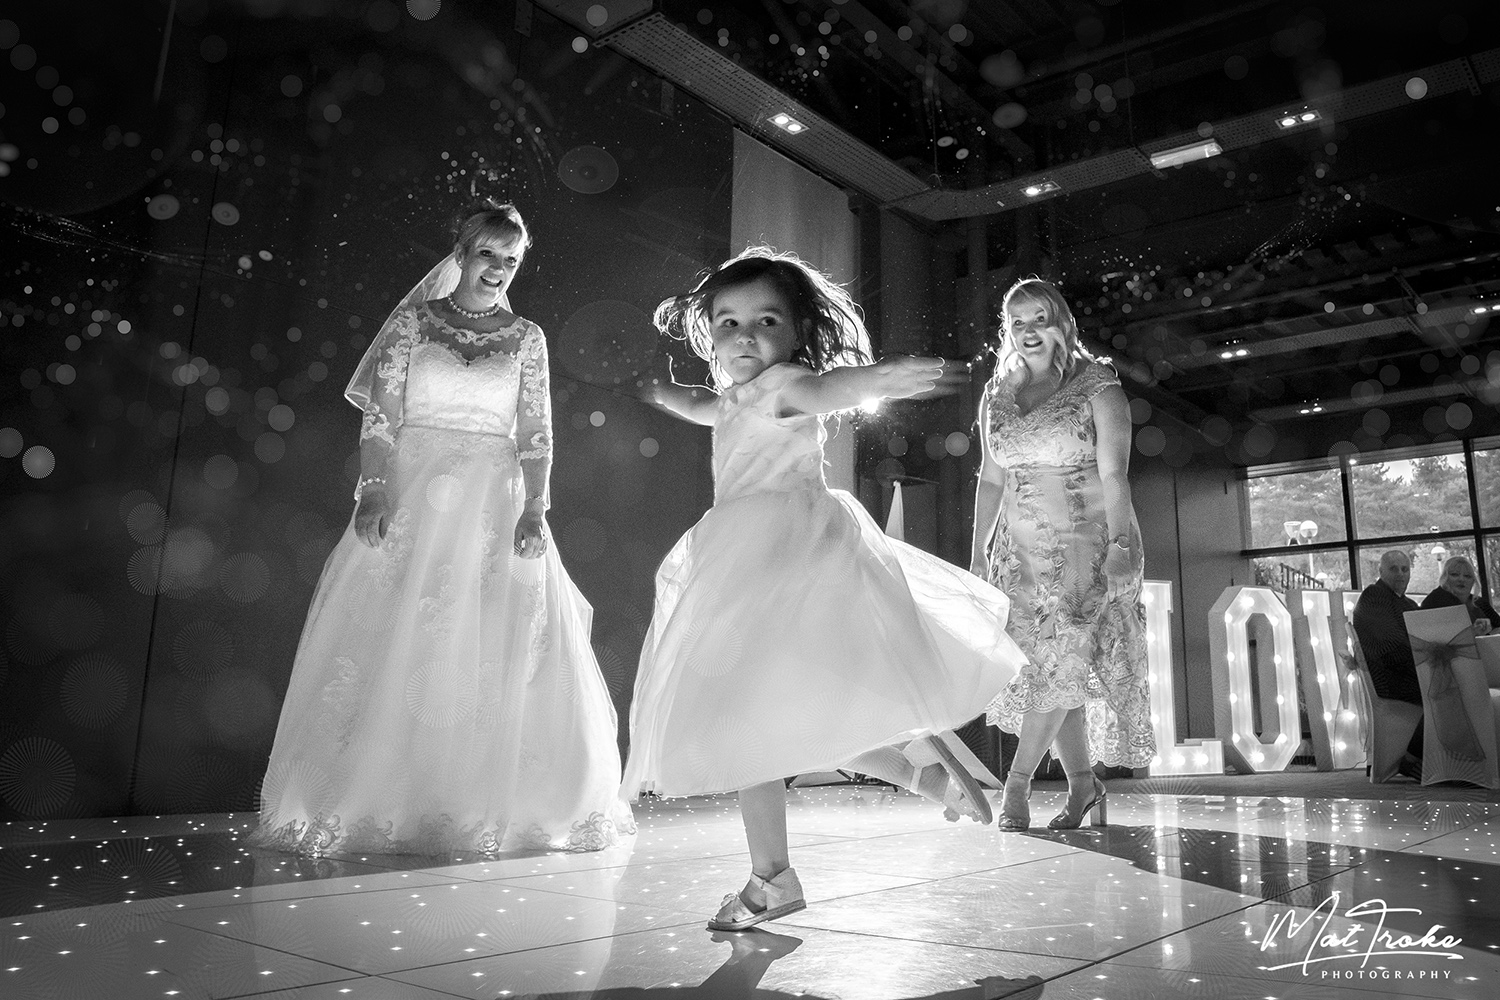 wedding_photography_mour_hotel_dekota_photographer_dance_mansfield_sherwood.jpg